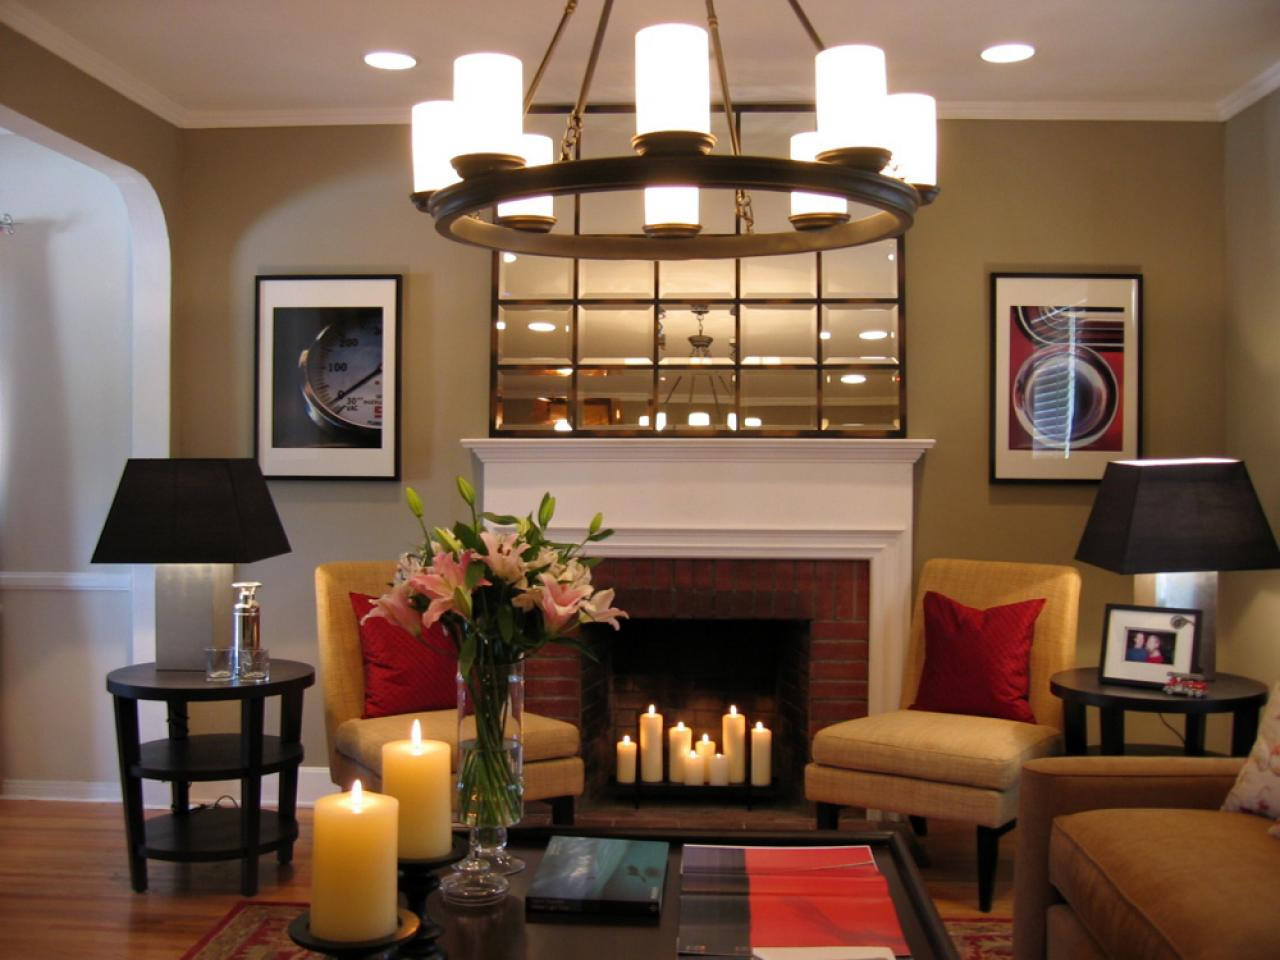 Cool Fireplace cool fireplace designs | homesfeed